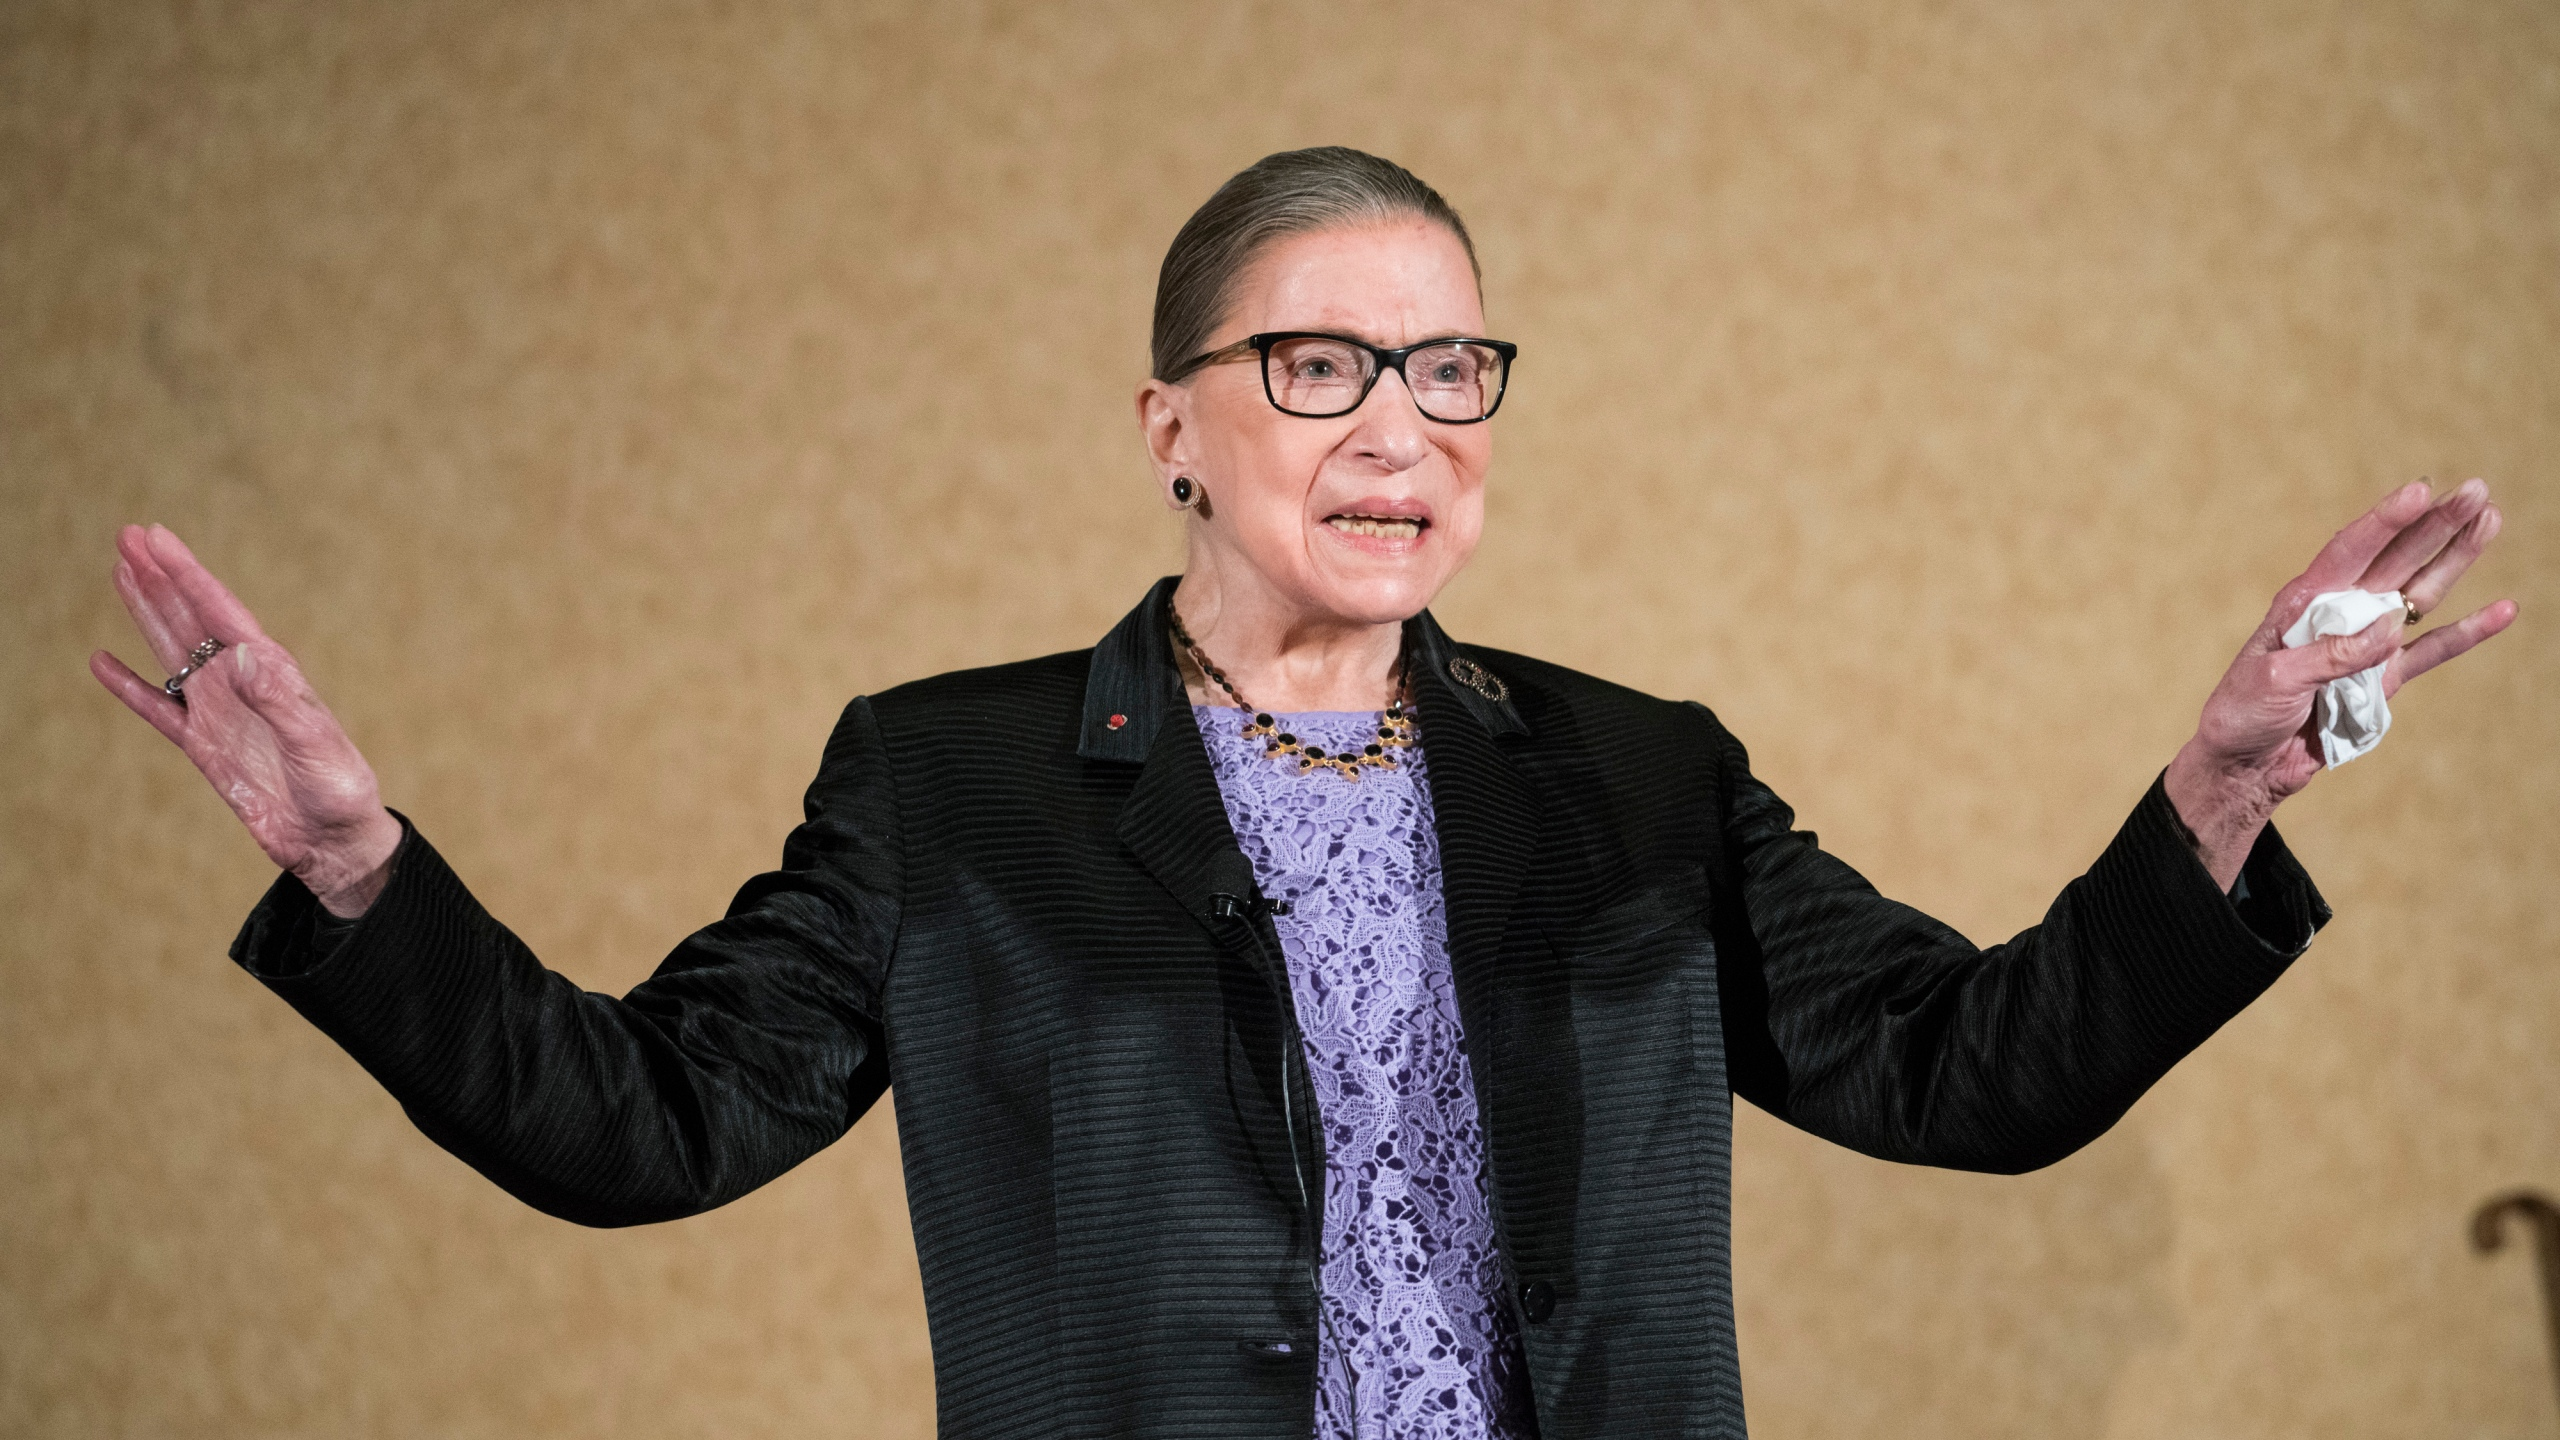 Supreme Court Justice Ruth Bader Ginsburg is introduced during the keynote address for the State Bar of New Mexico's annual meeting in Pojoaque, New Mexico, on Aug. 19, 2016. (Craig Fritz / Associated Press)